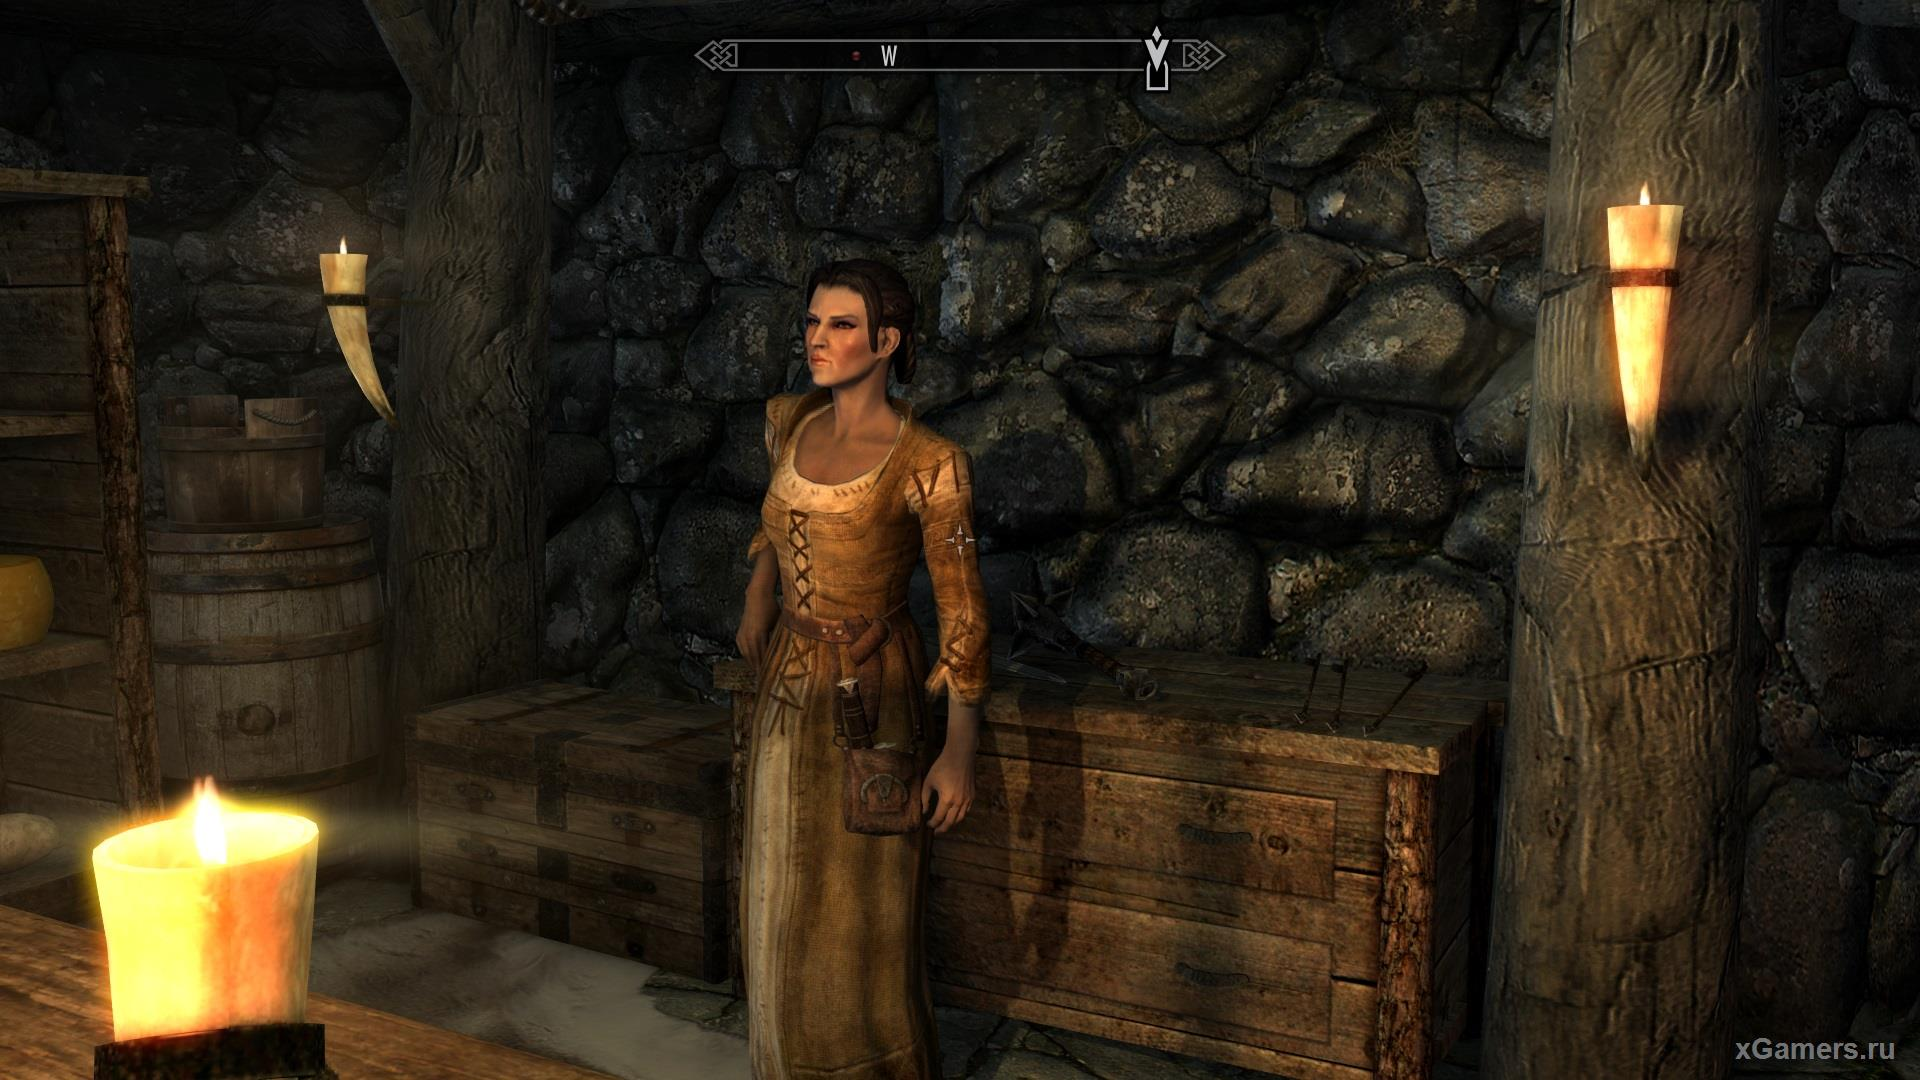 Camilla - a great companion of Dovakin in the game Skyrim